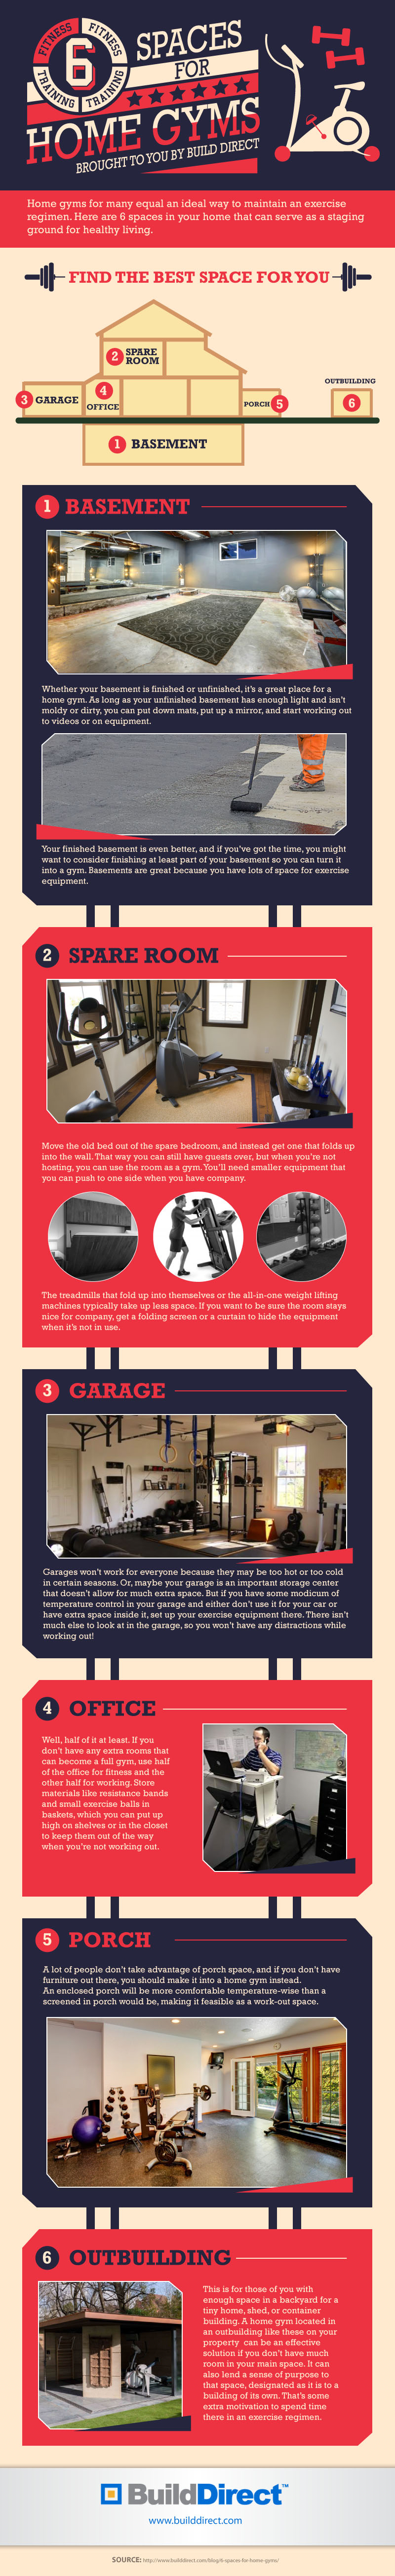 Spaces for home gyms an infographic